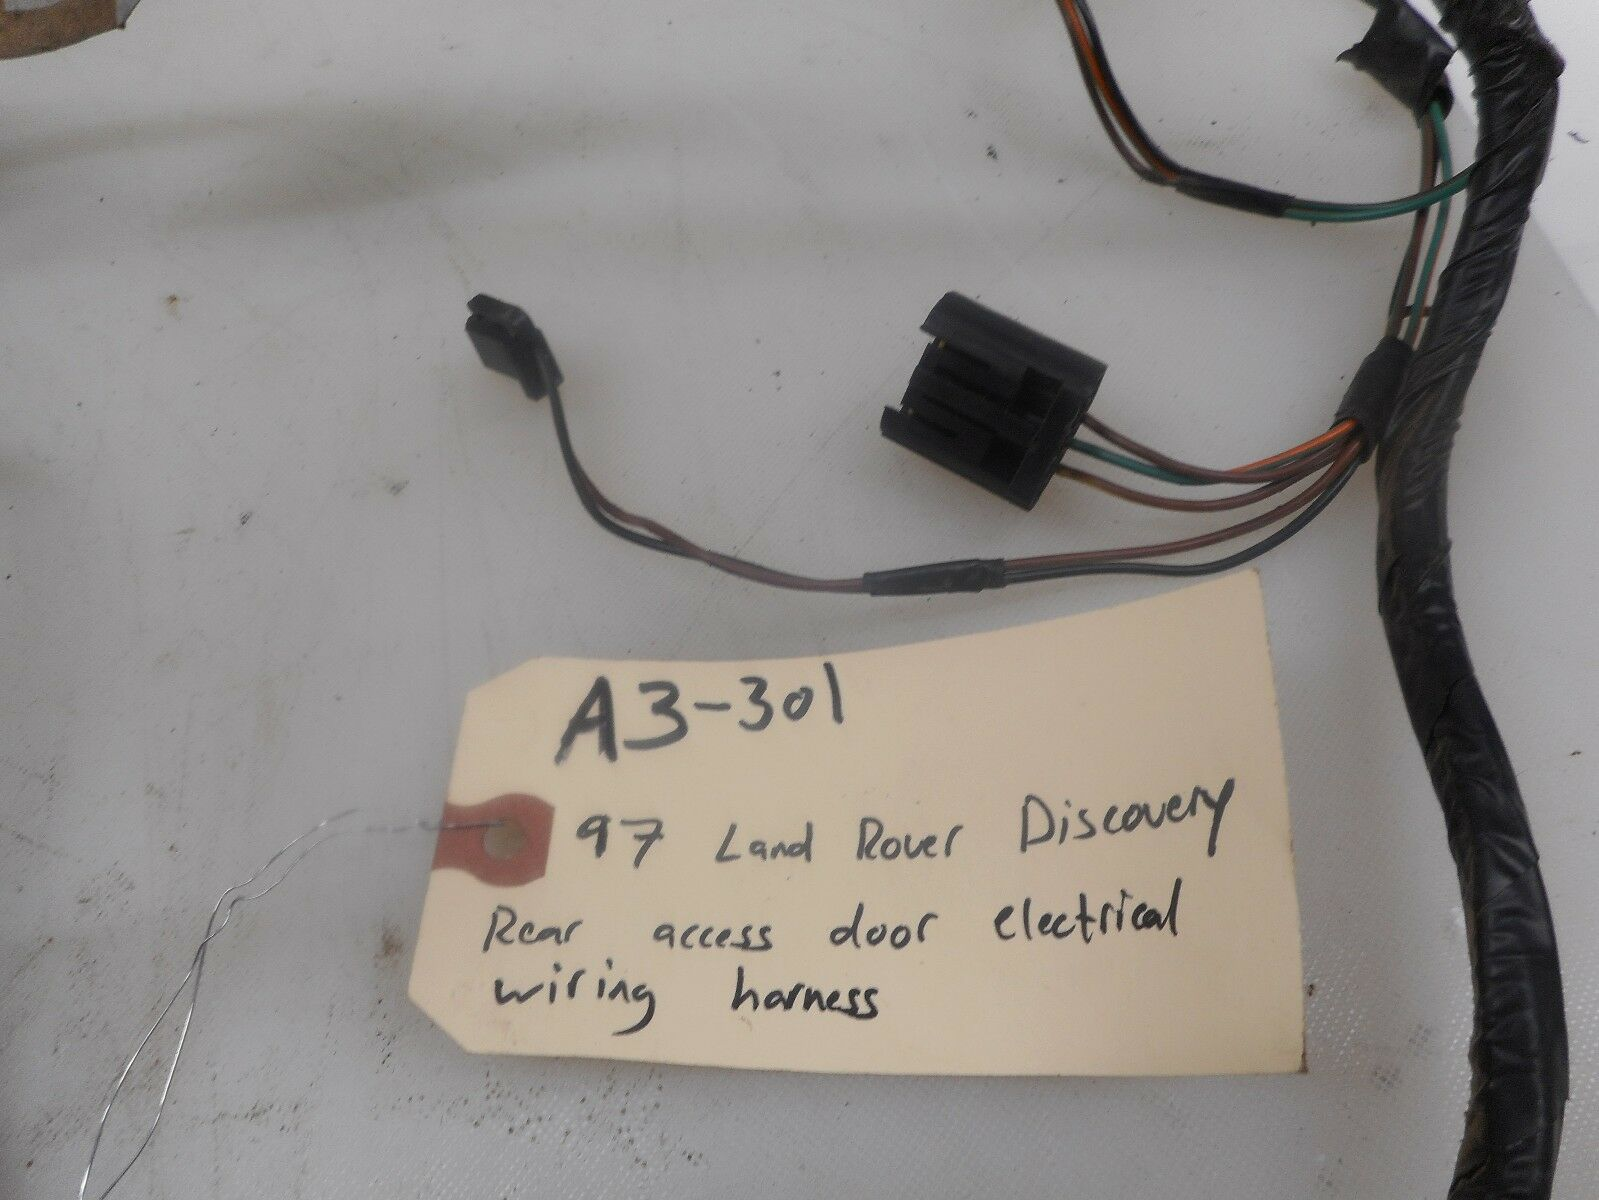 Land Rover Discovery Wiring Harness Schematic Diagrams Schematics Buick Enclave